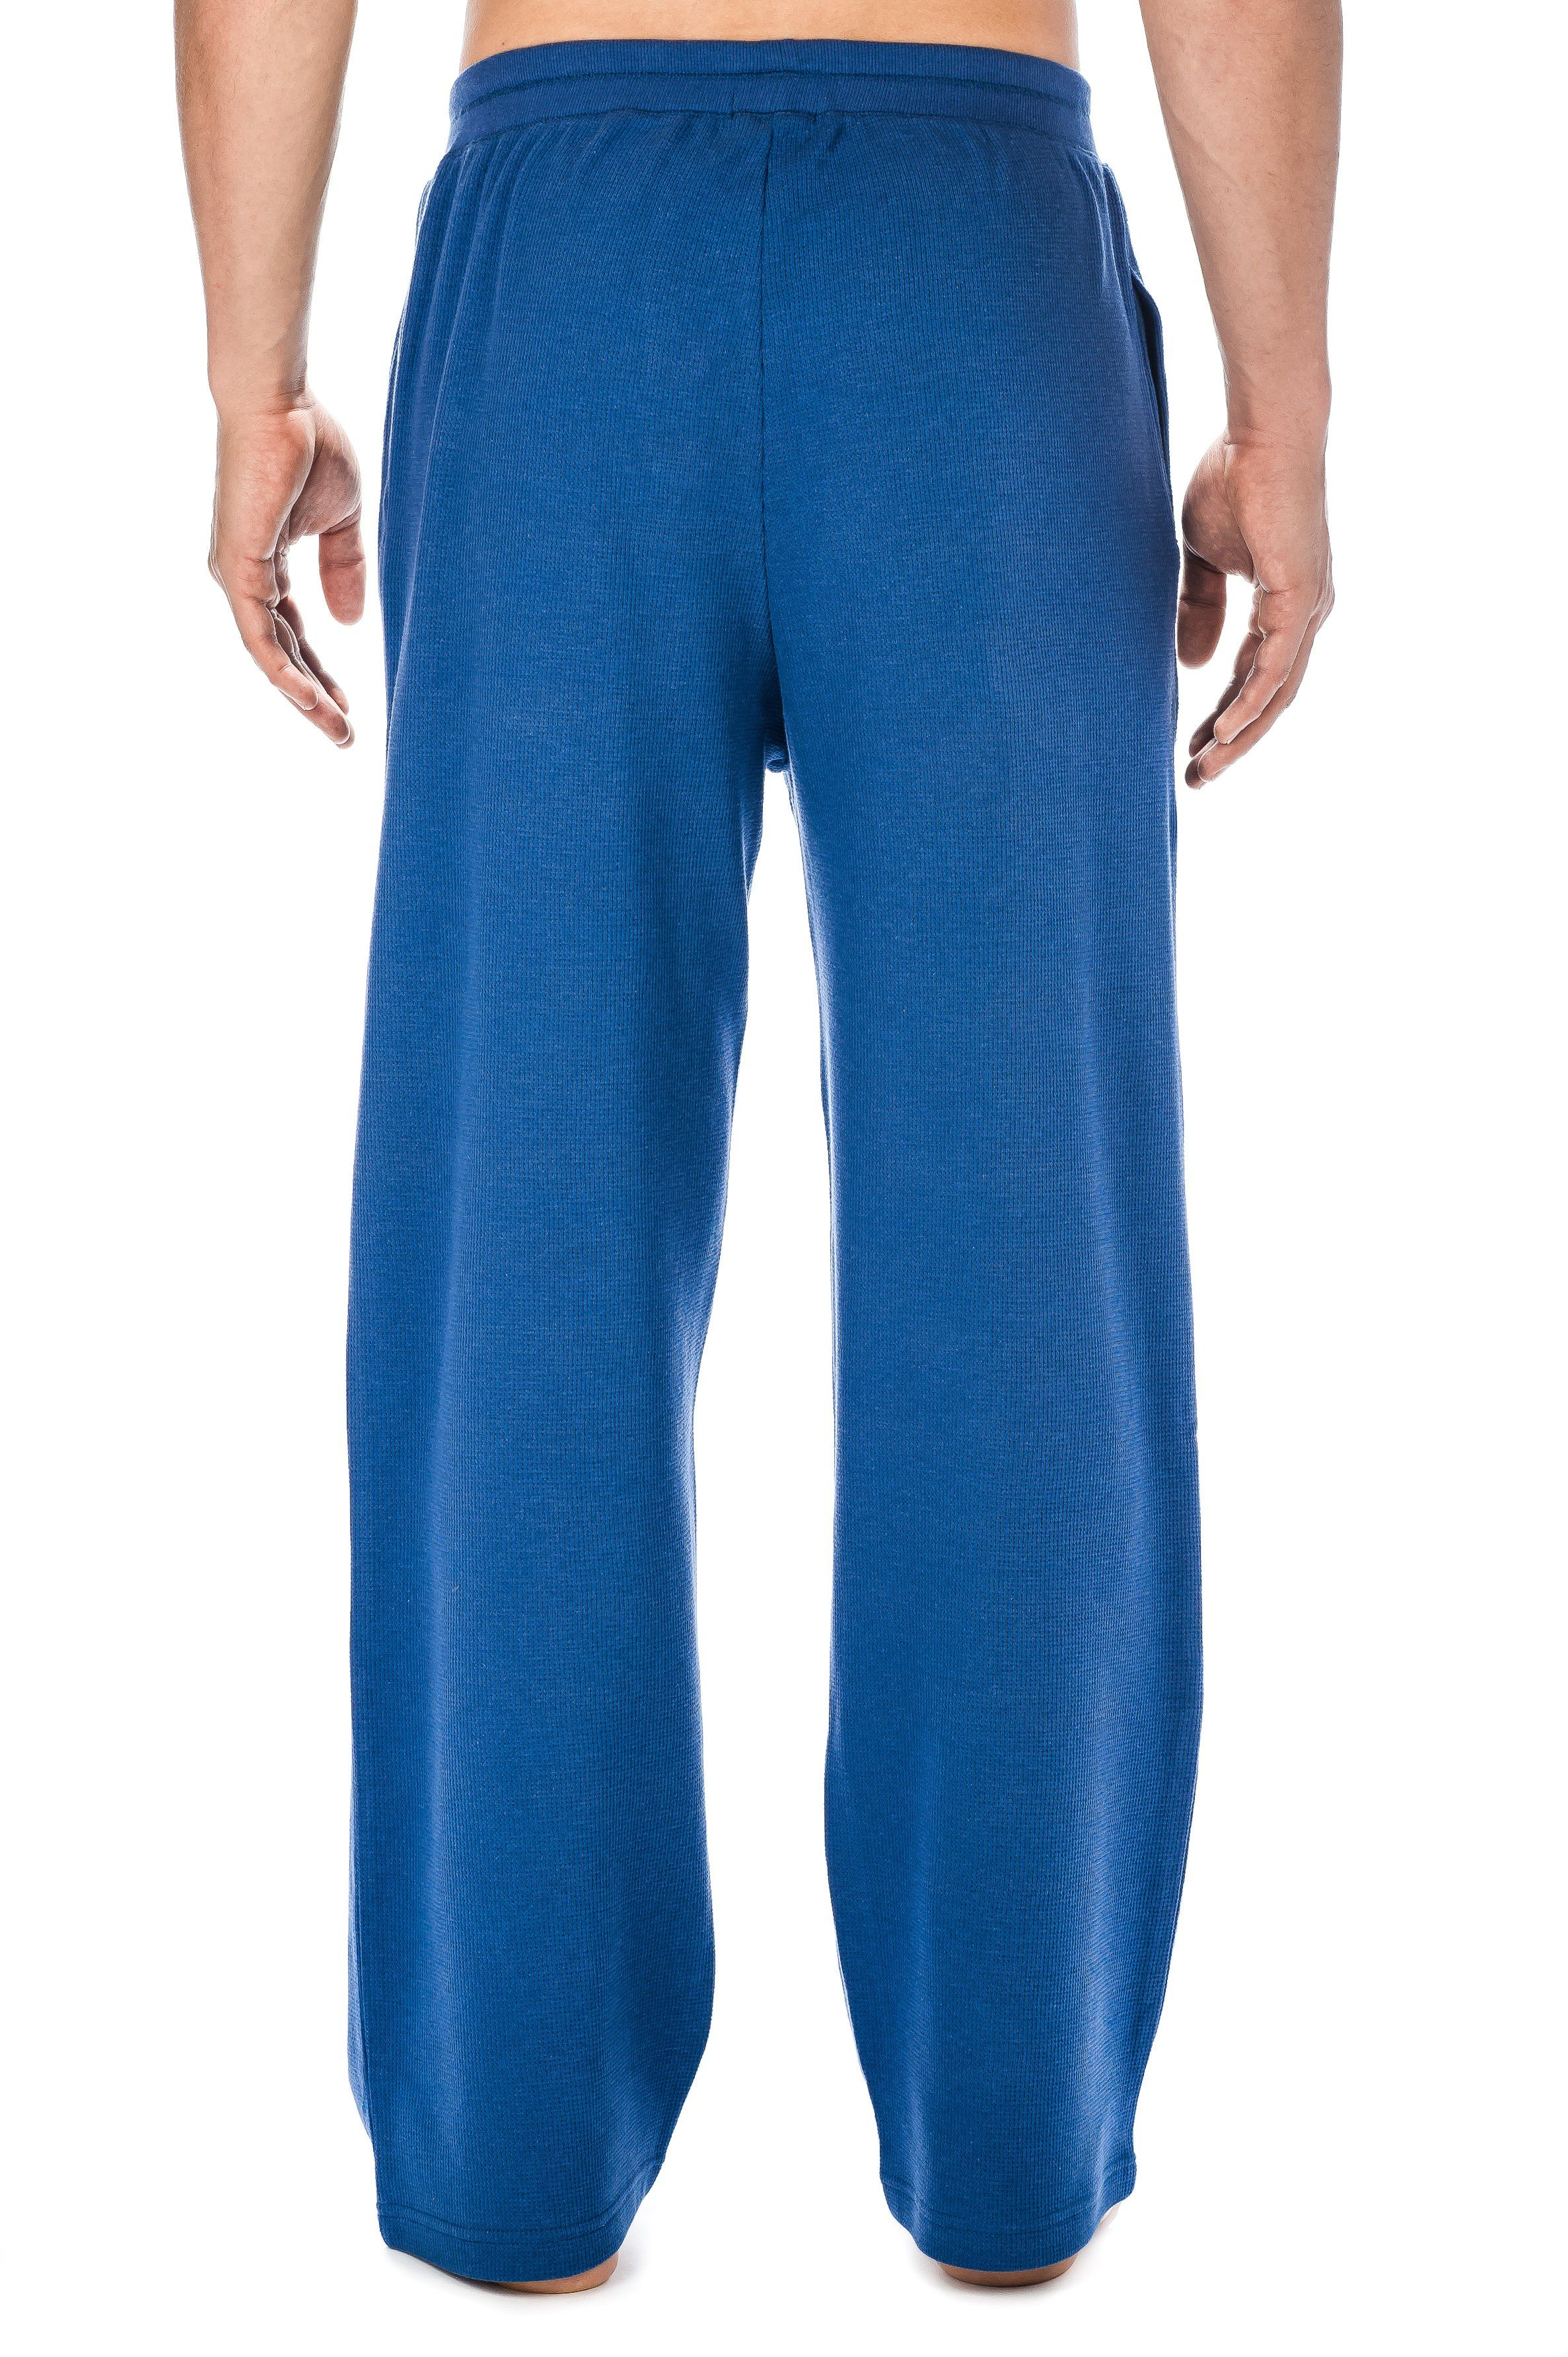 74e184294748d0 Men's Waffle Knit Thermal Lounge Pant | Products | Pants, Thermal ...